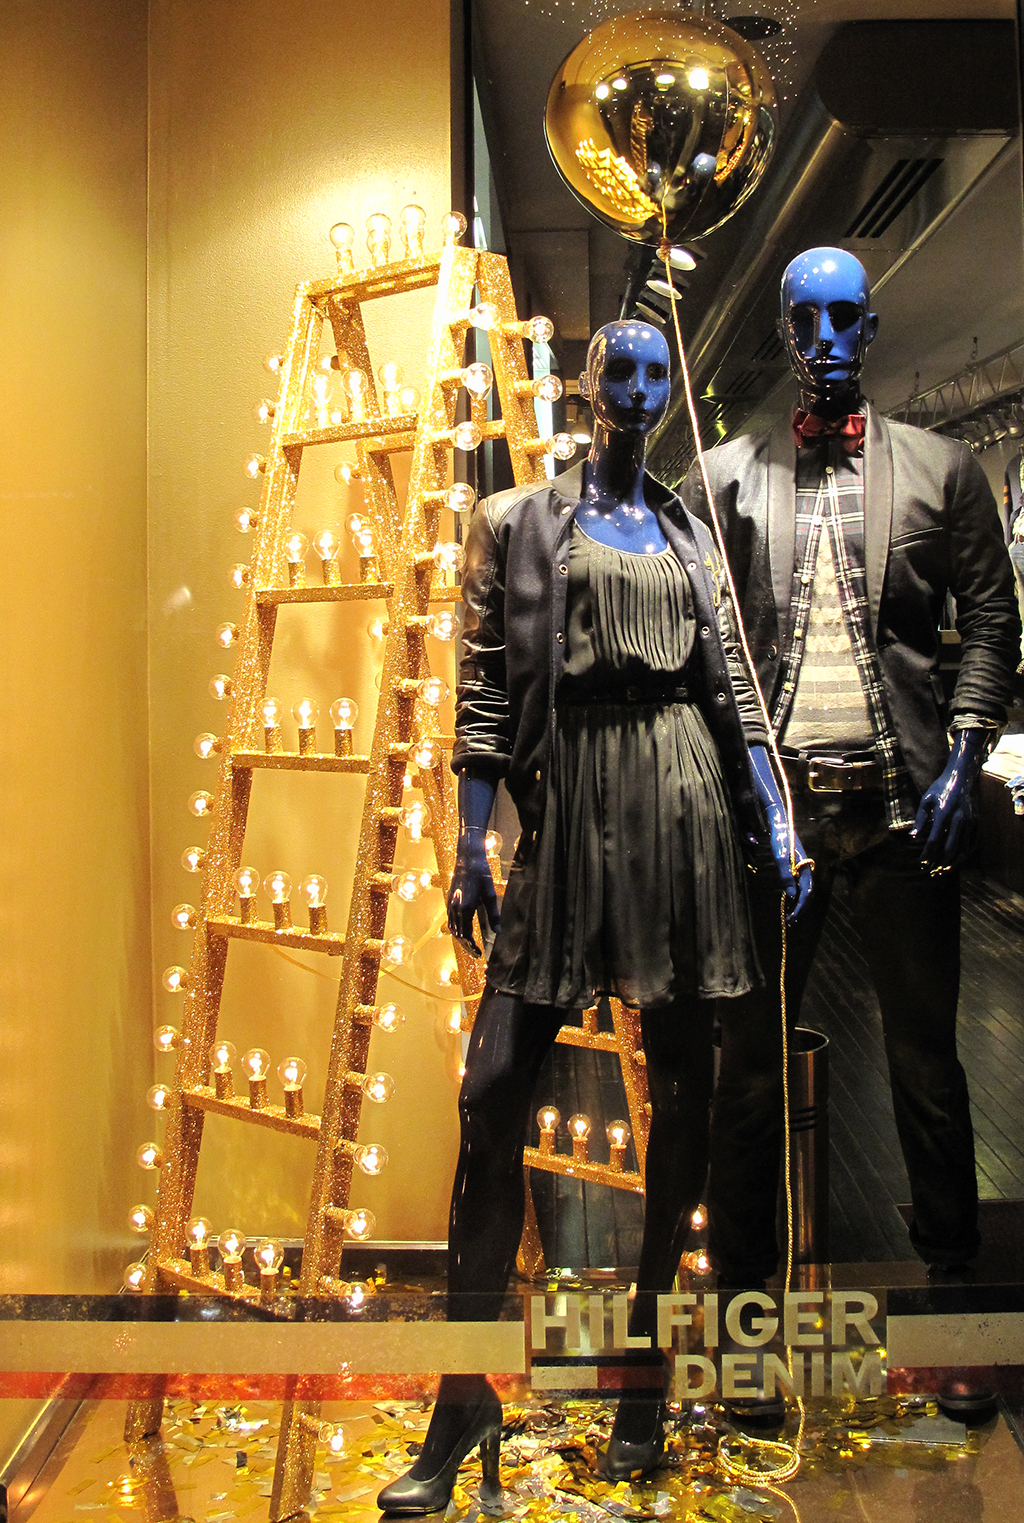 Hilfiger denim used props like a golden ladder with lamps and golden - Deck The Holiday S 12 23 13